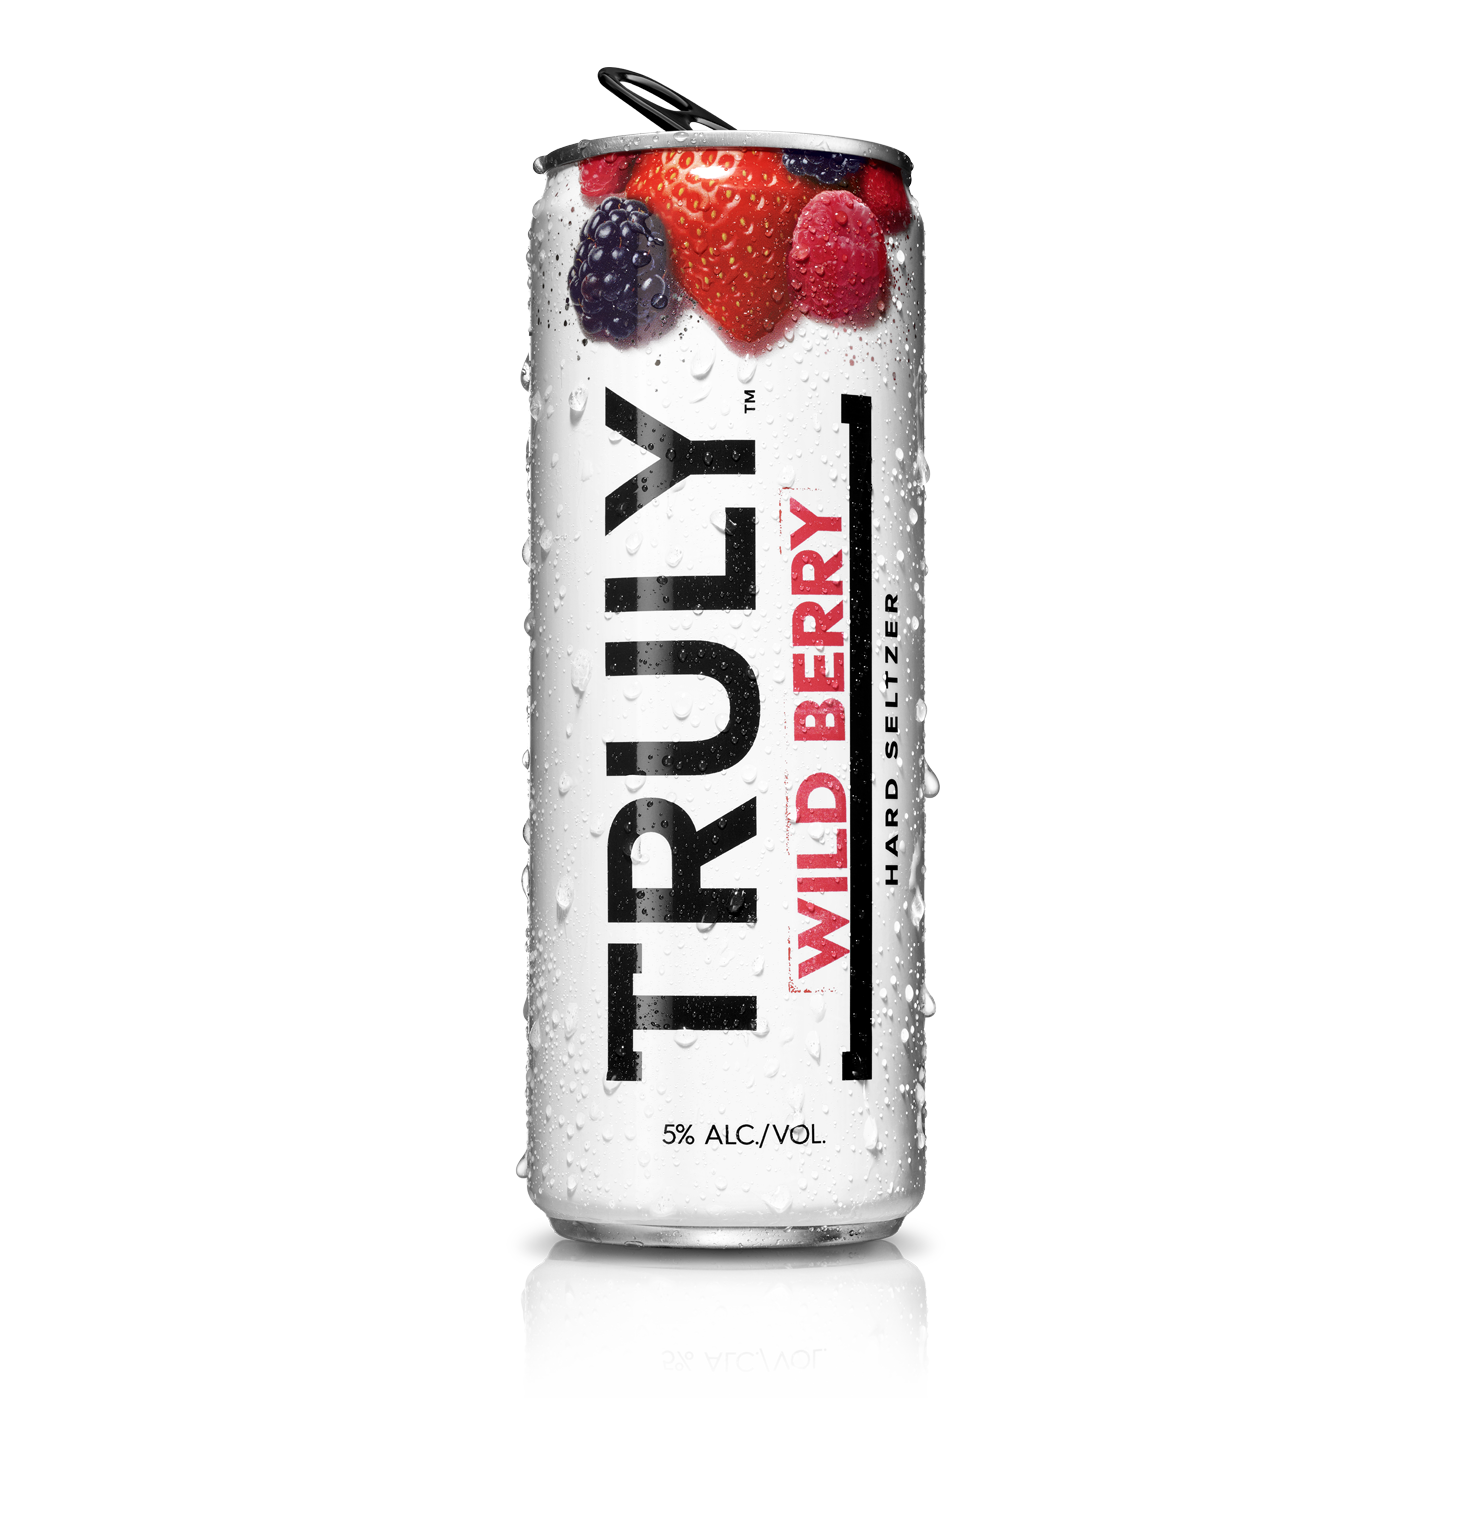 Truly Spiked Sparkling Wild Berry